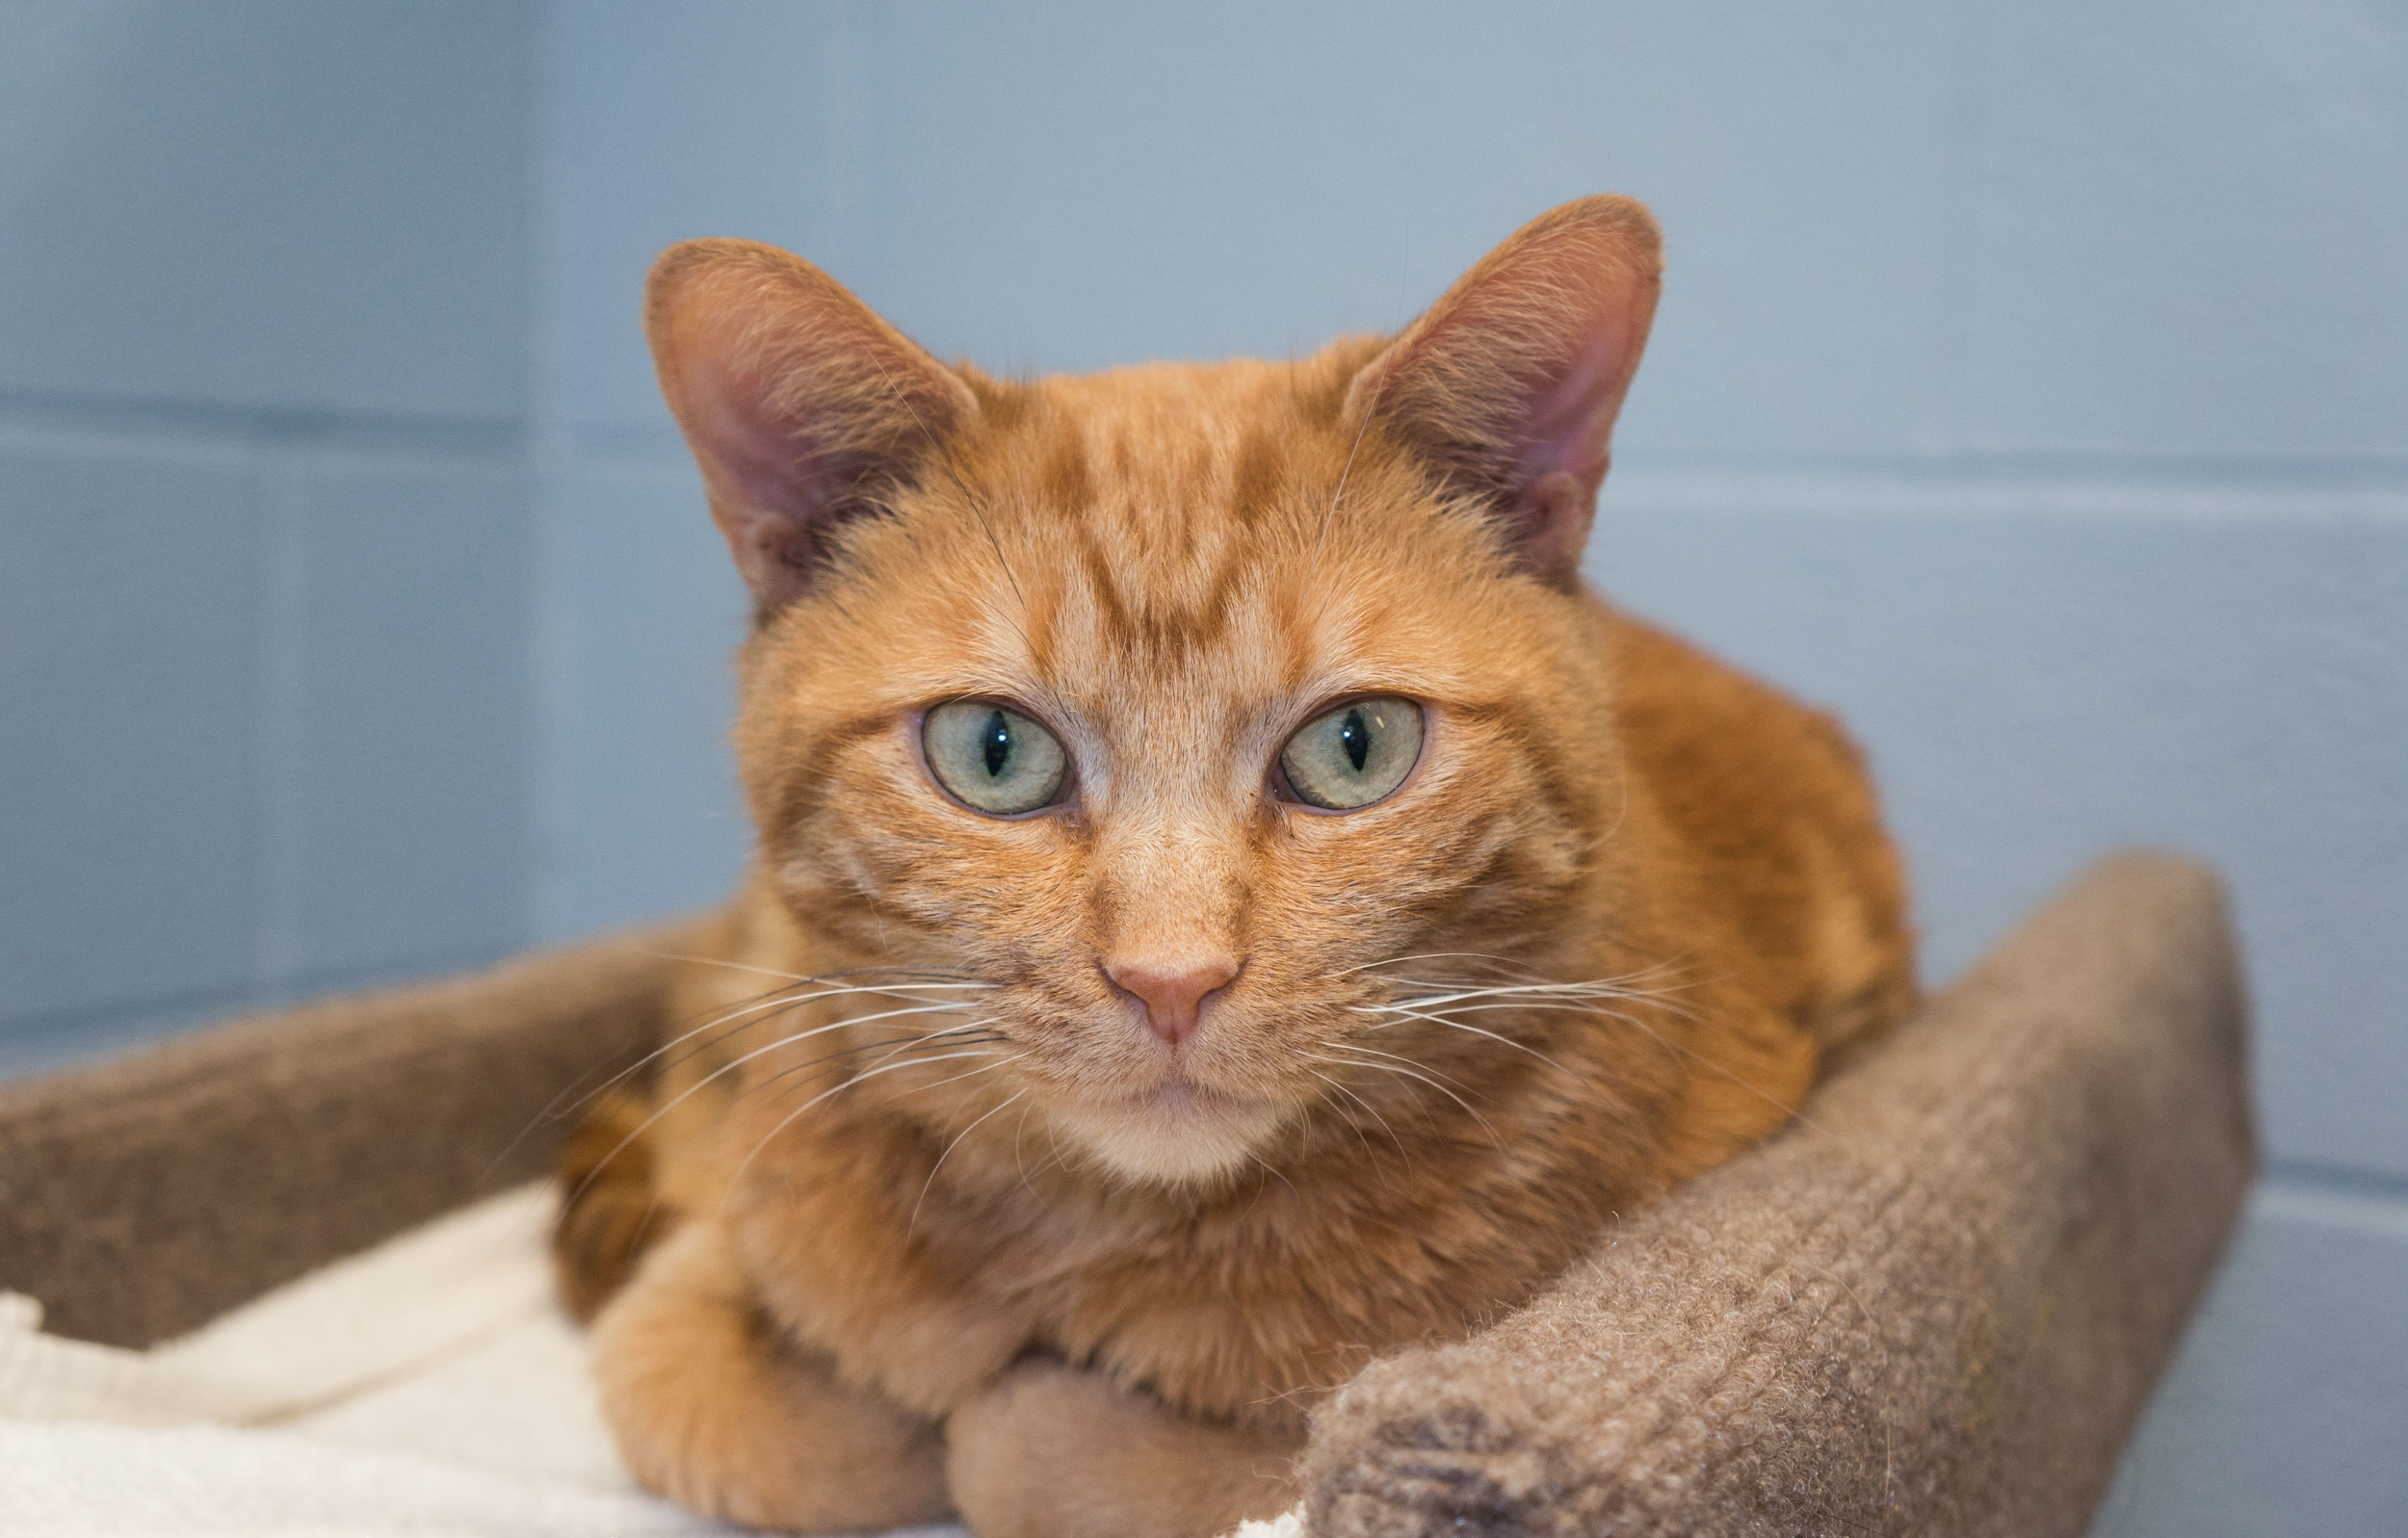 Adopt a Cat - Click above to see our available cats